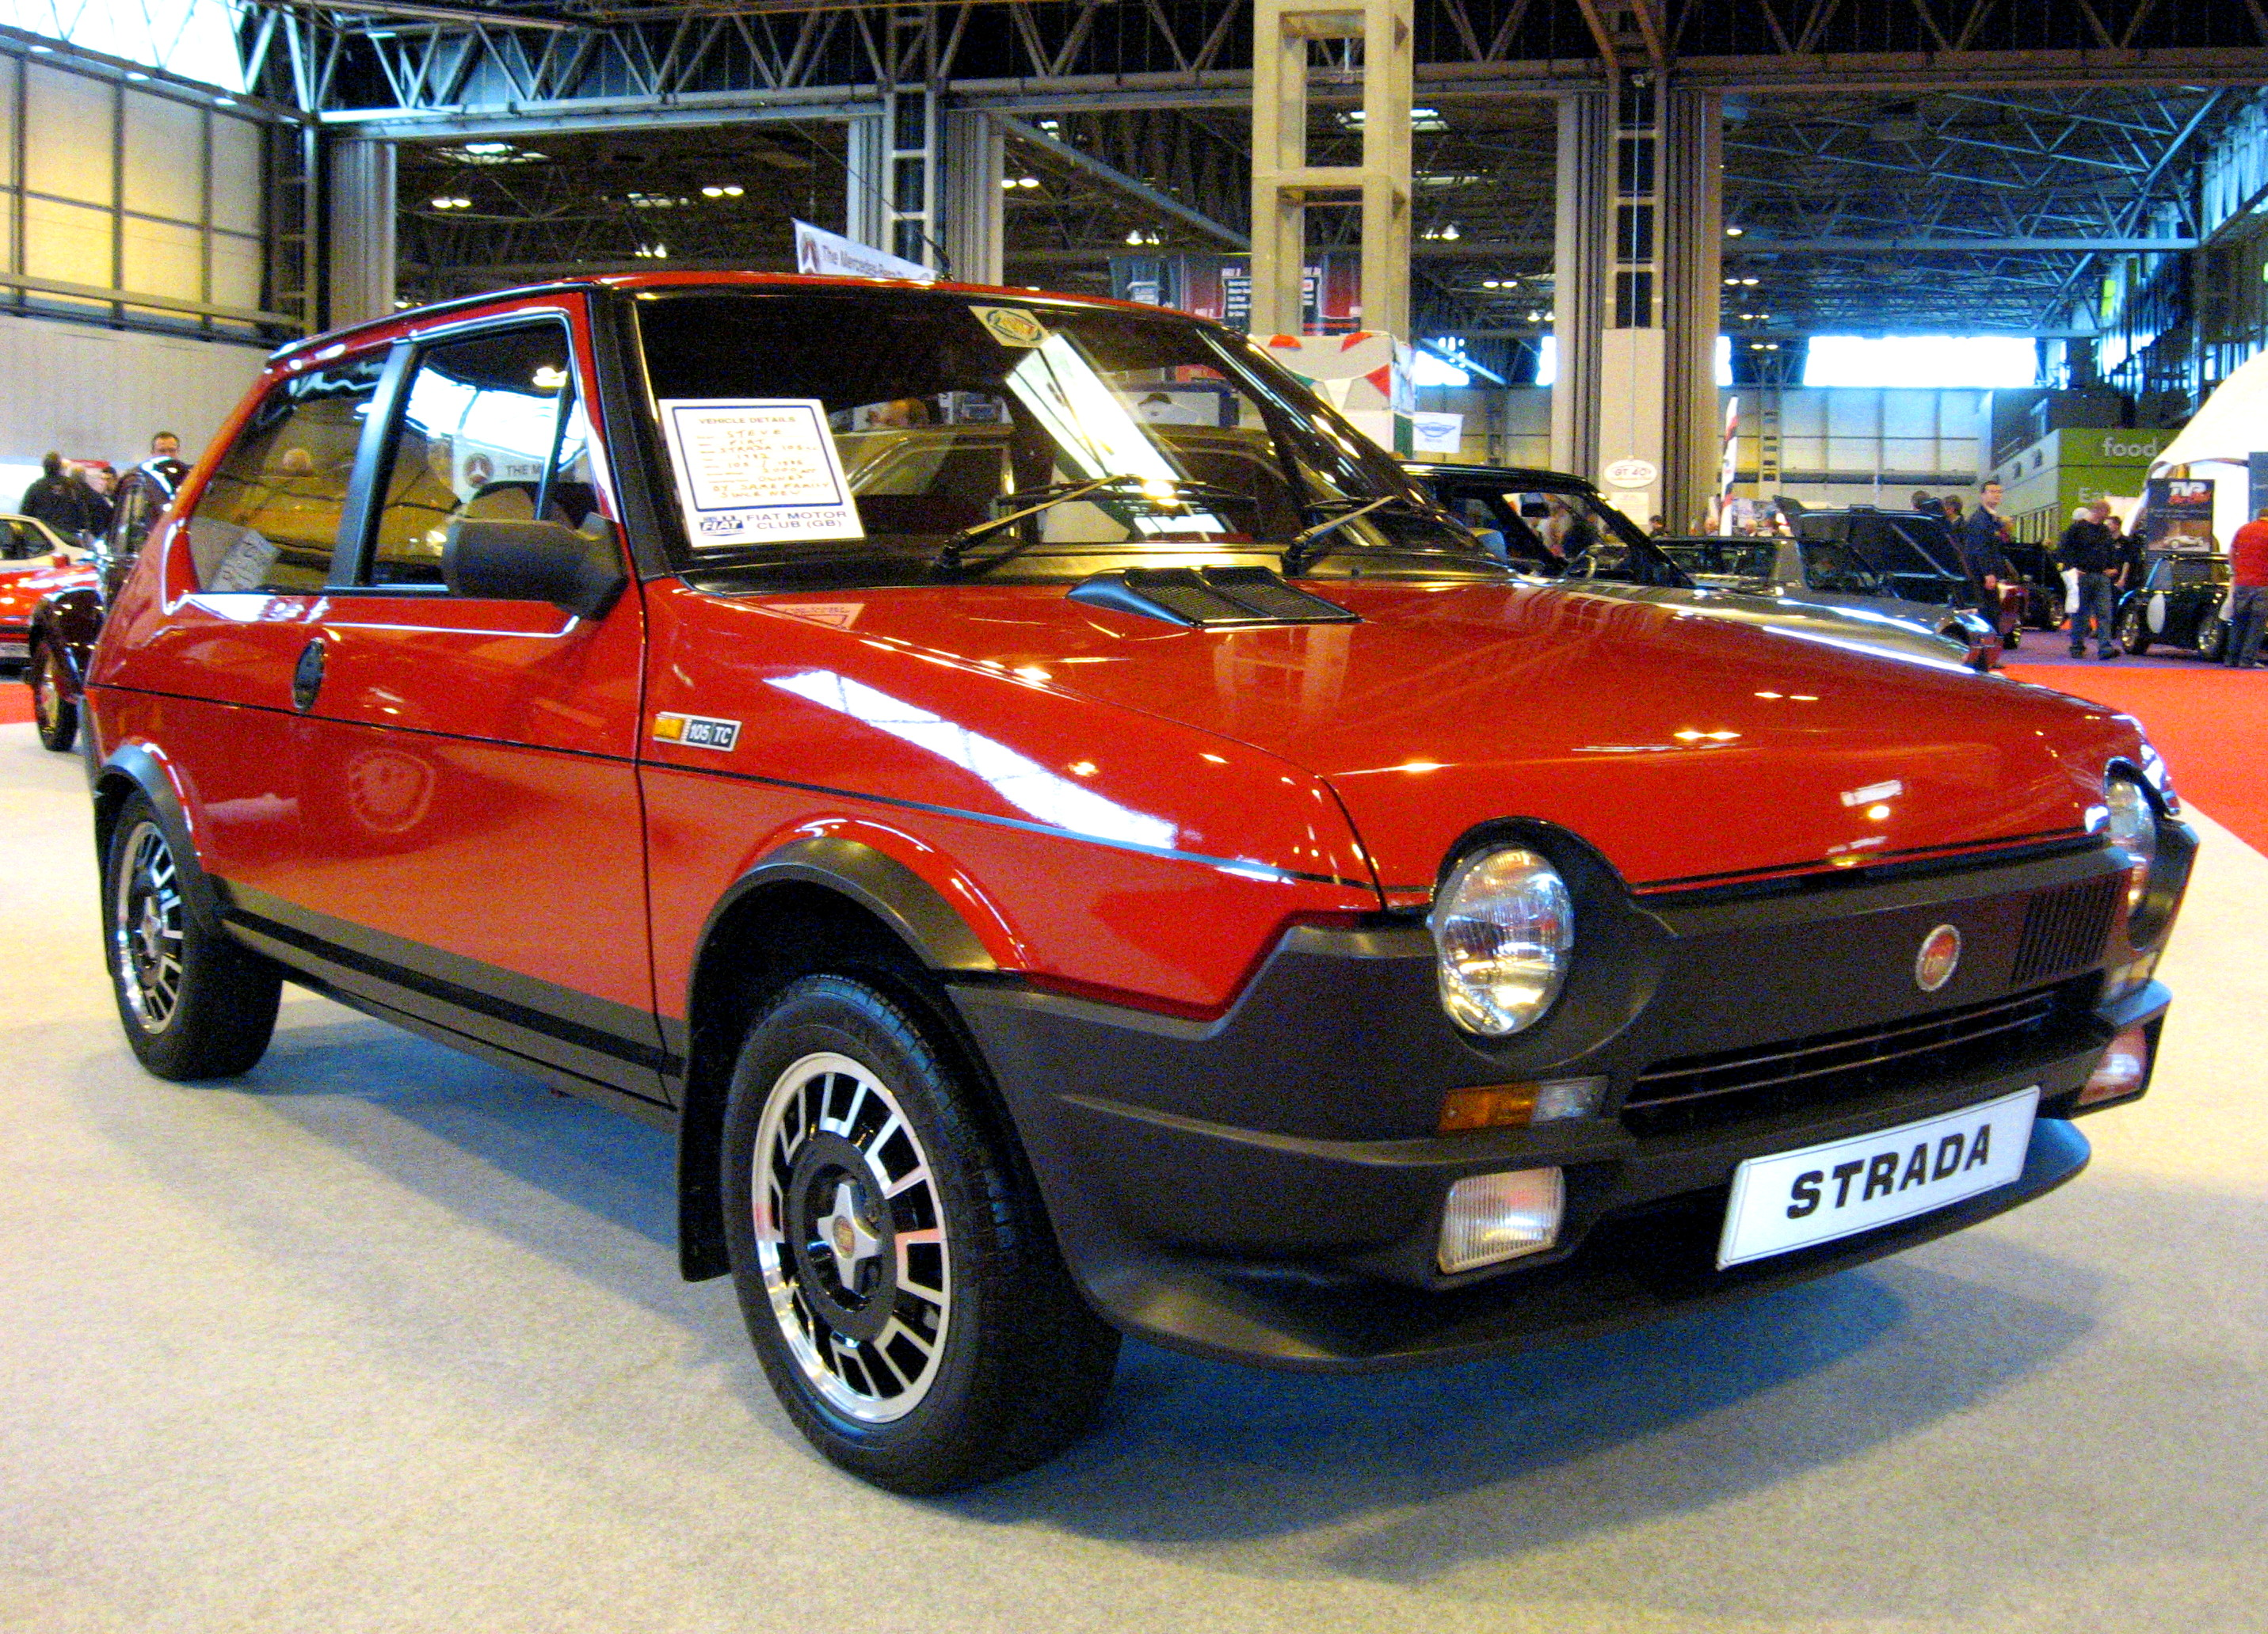 file:fiat strada 105tc - wikimedia commons